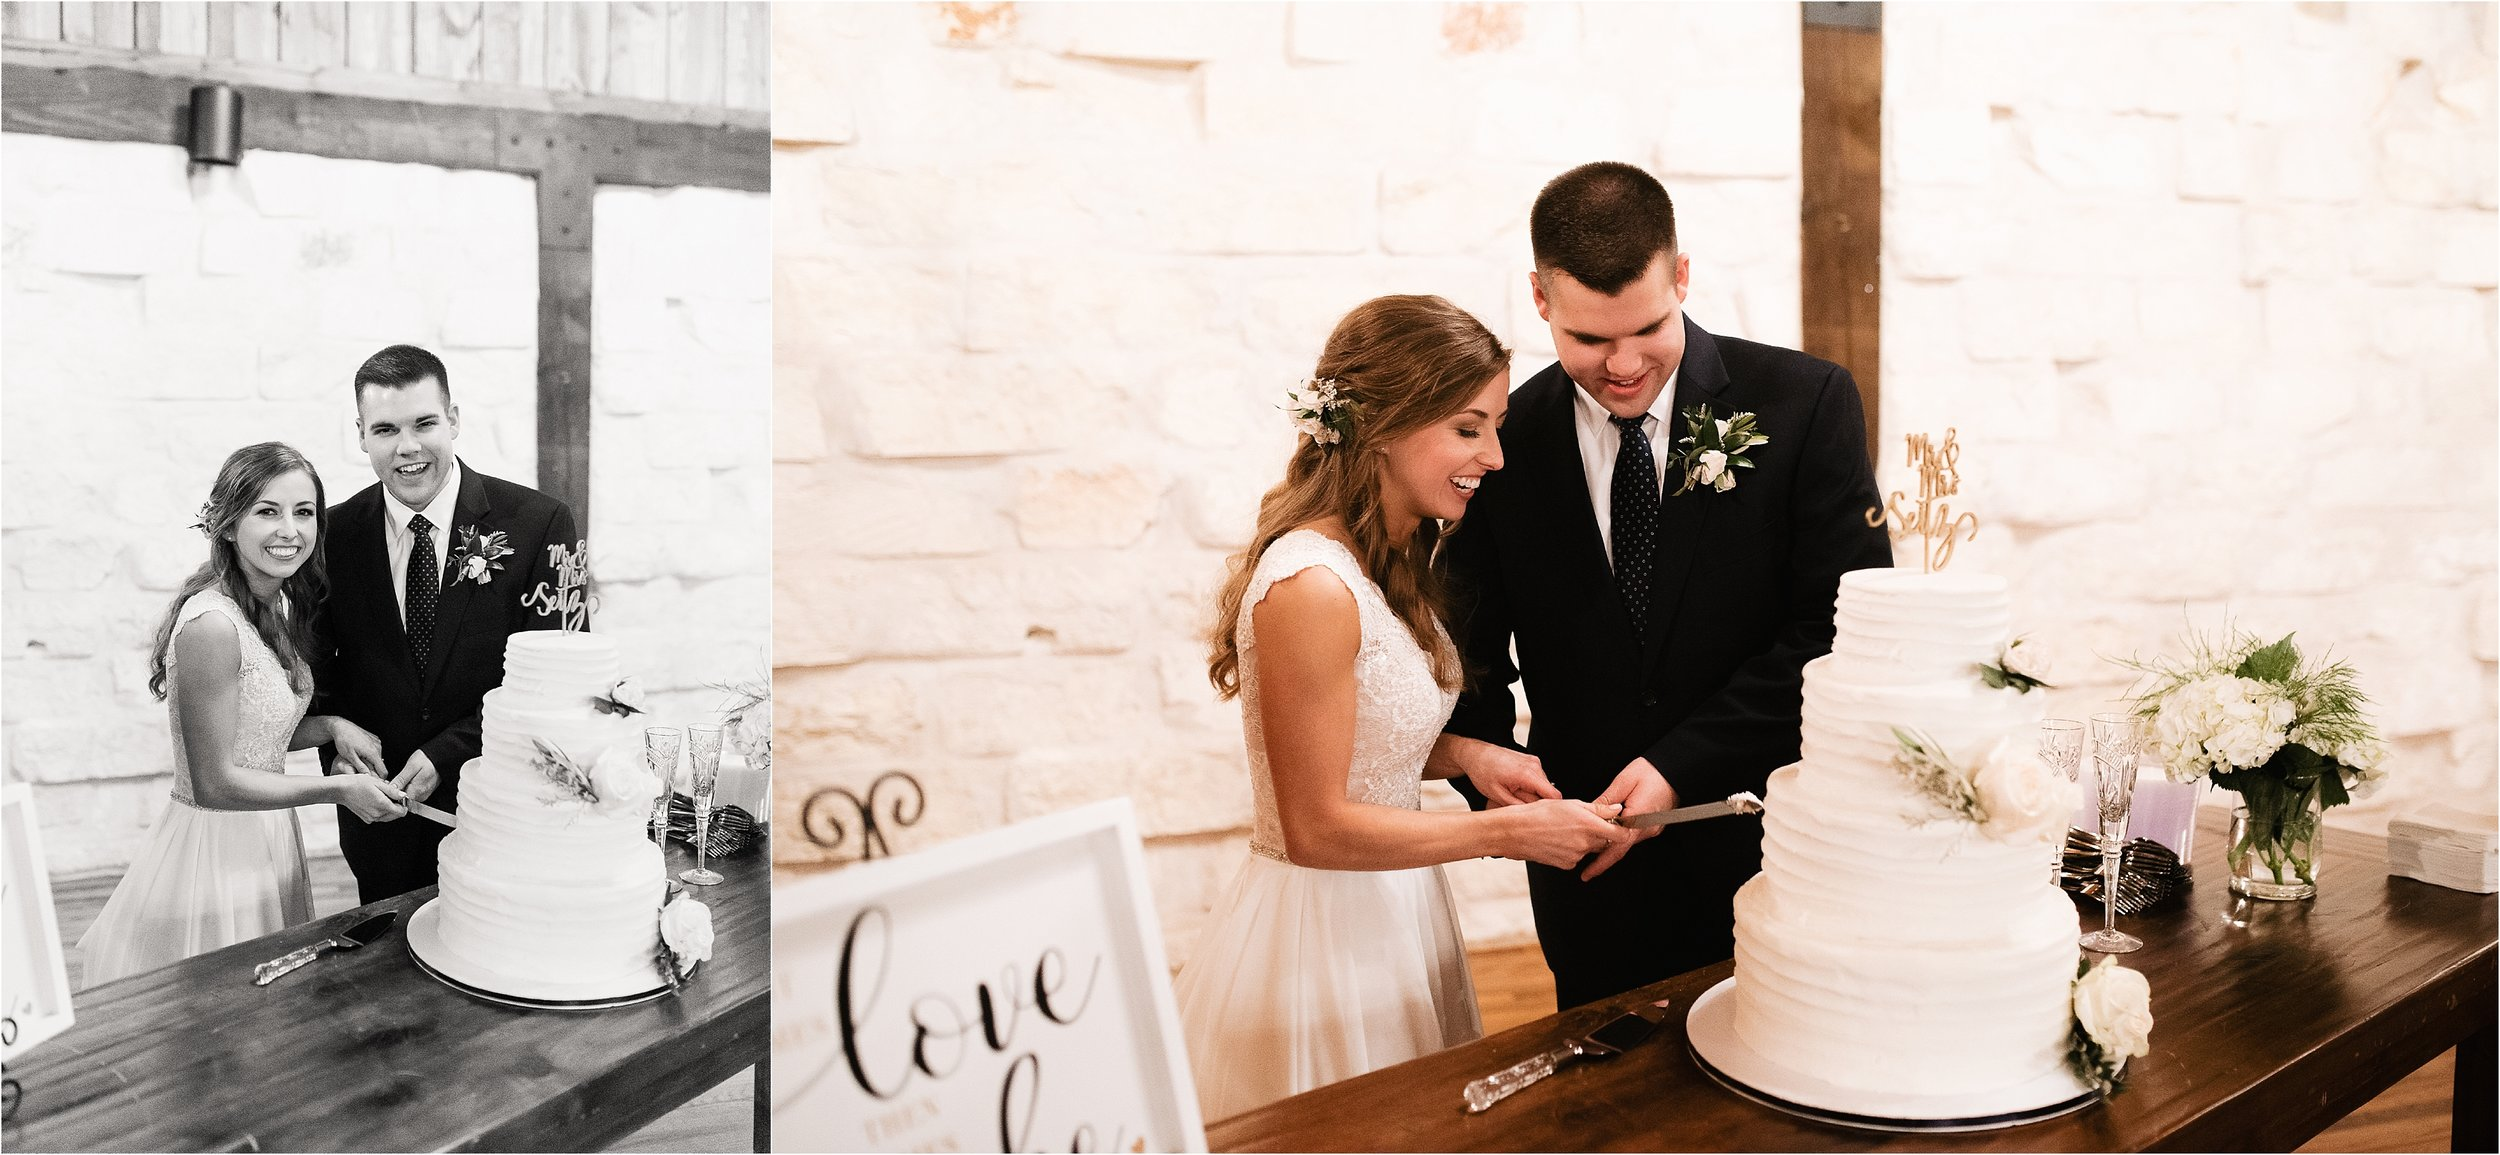 oklahoma wedding photographer reception family friends hugs congratulations best wishes toasts cake cut four tier smash